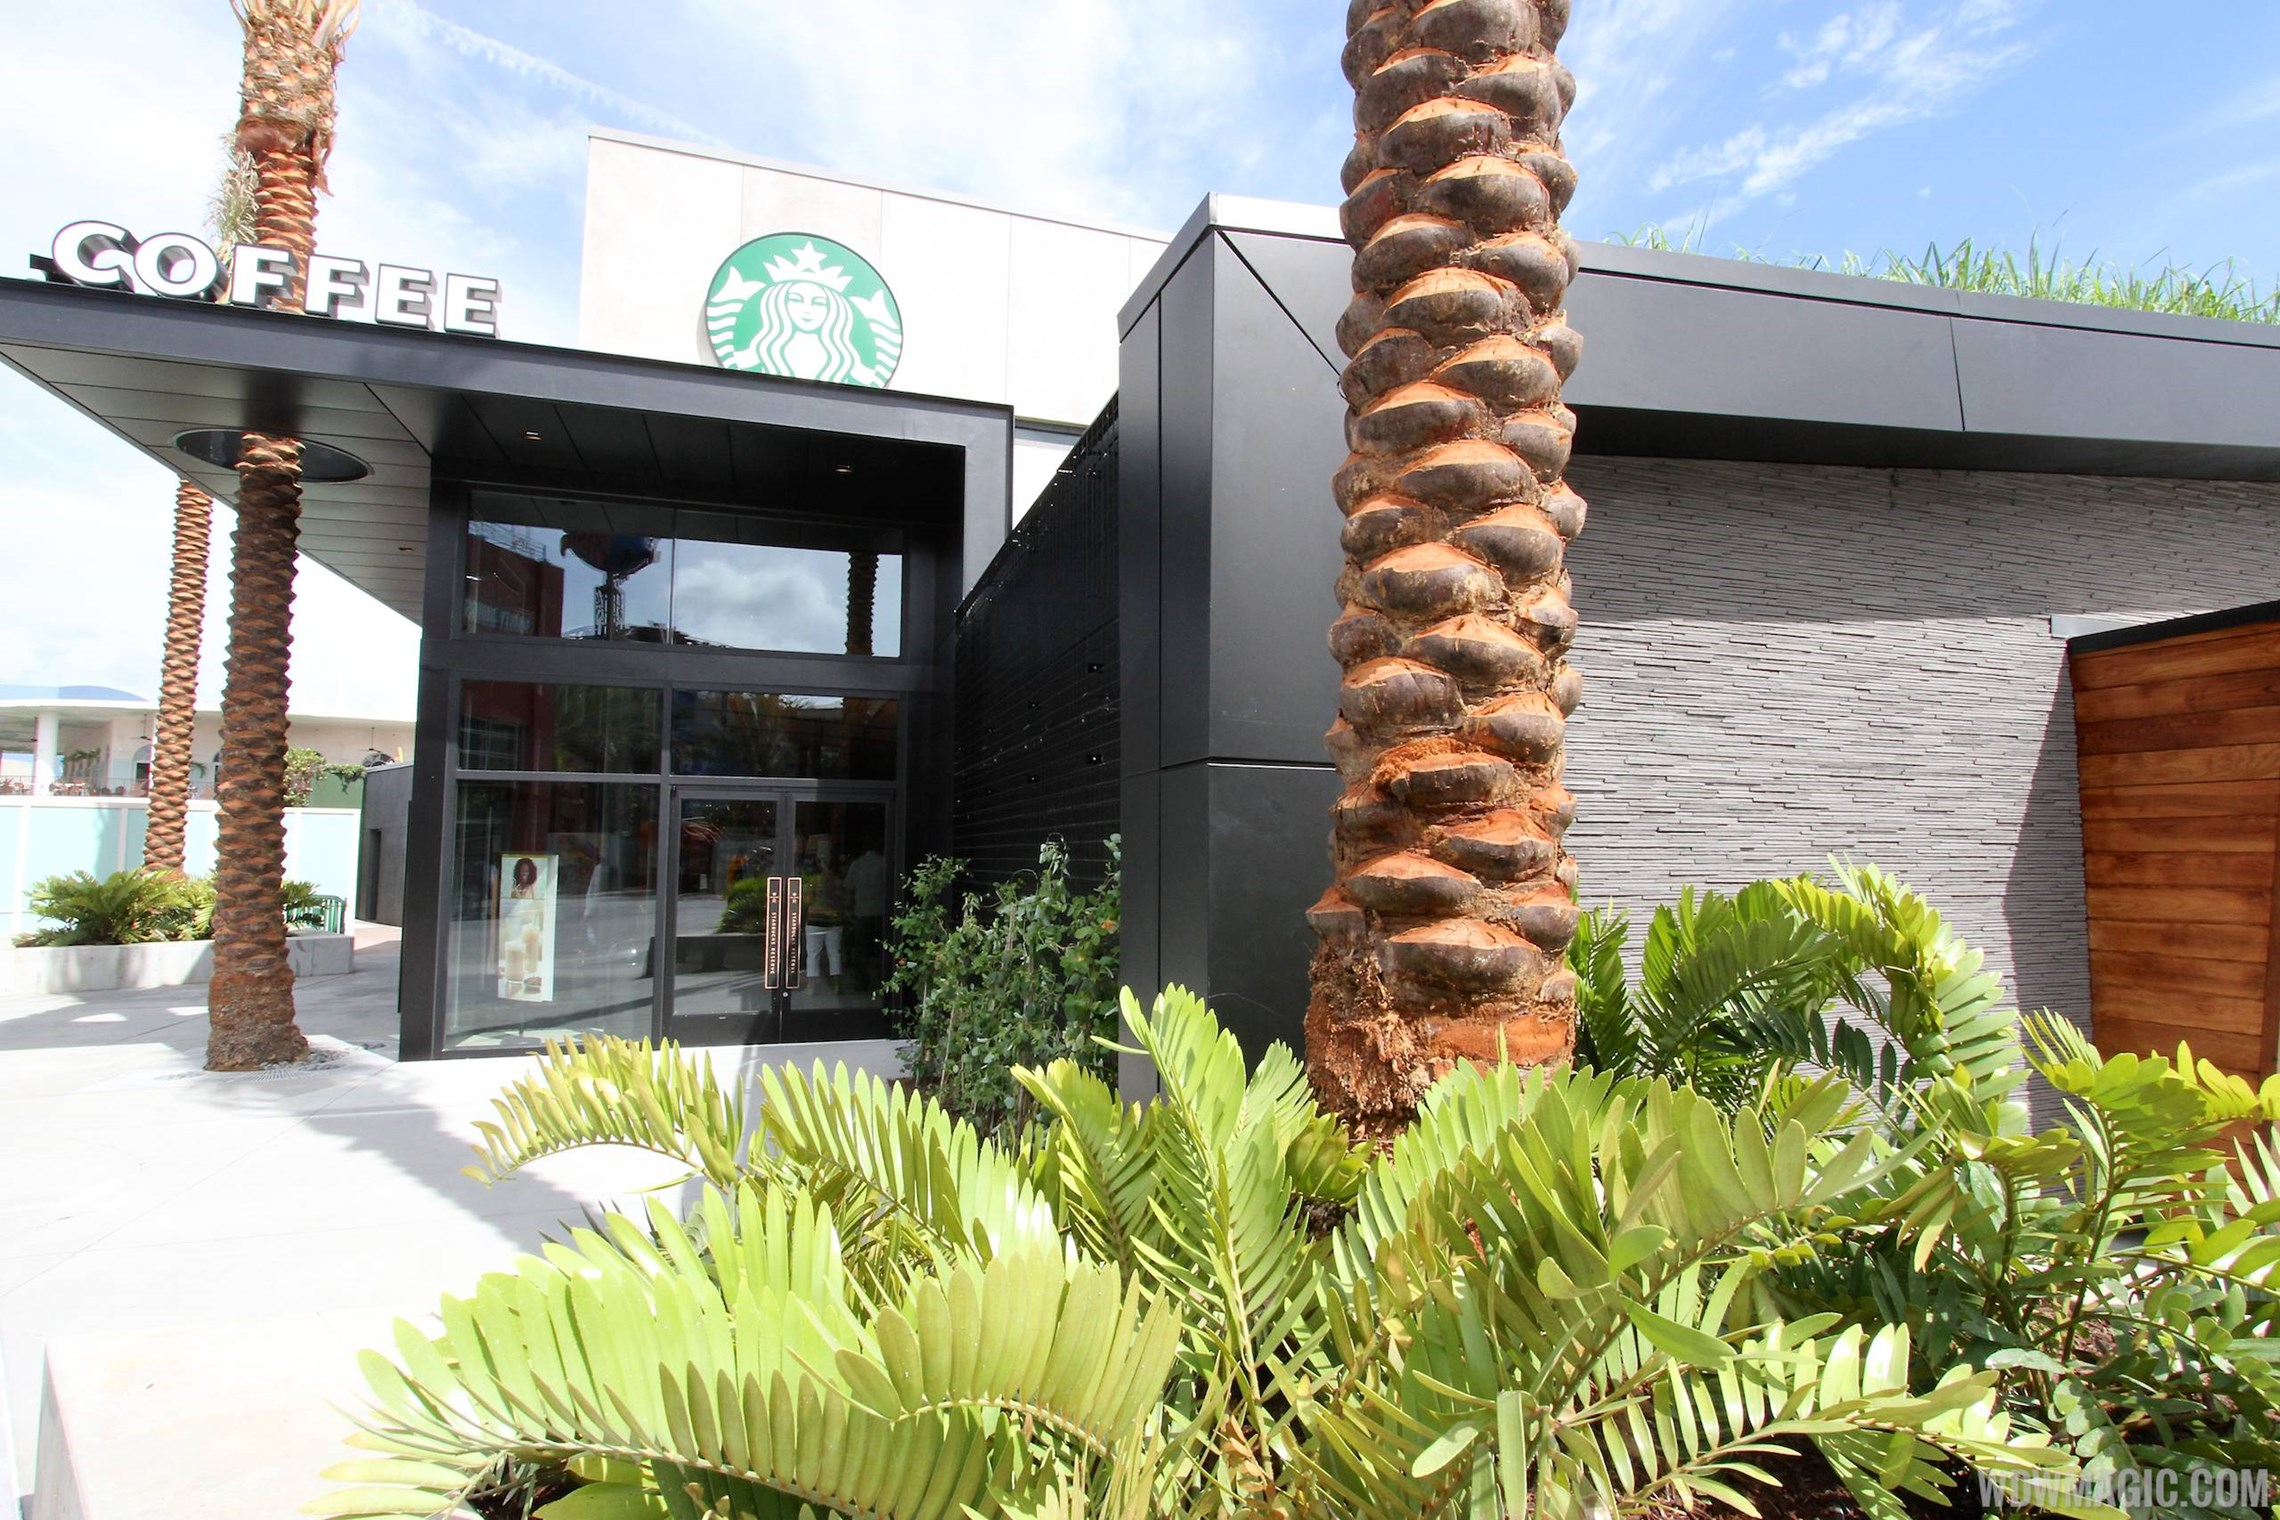 Starbucks West Side opening day - inside and out